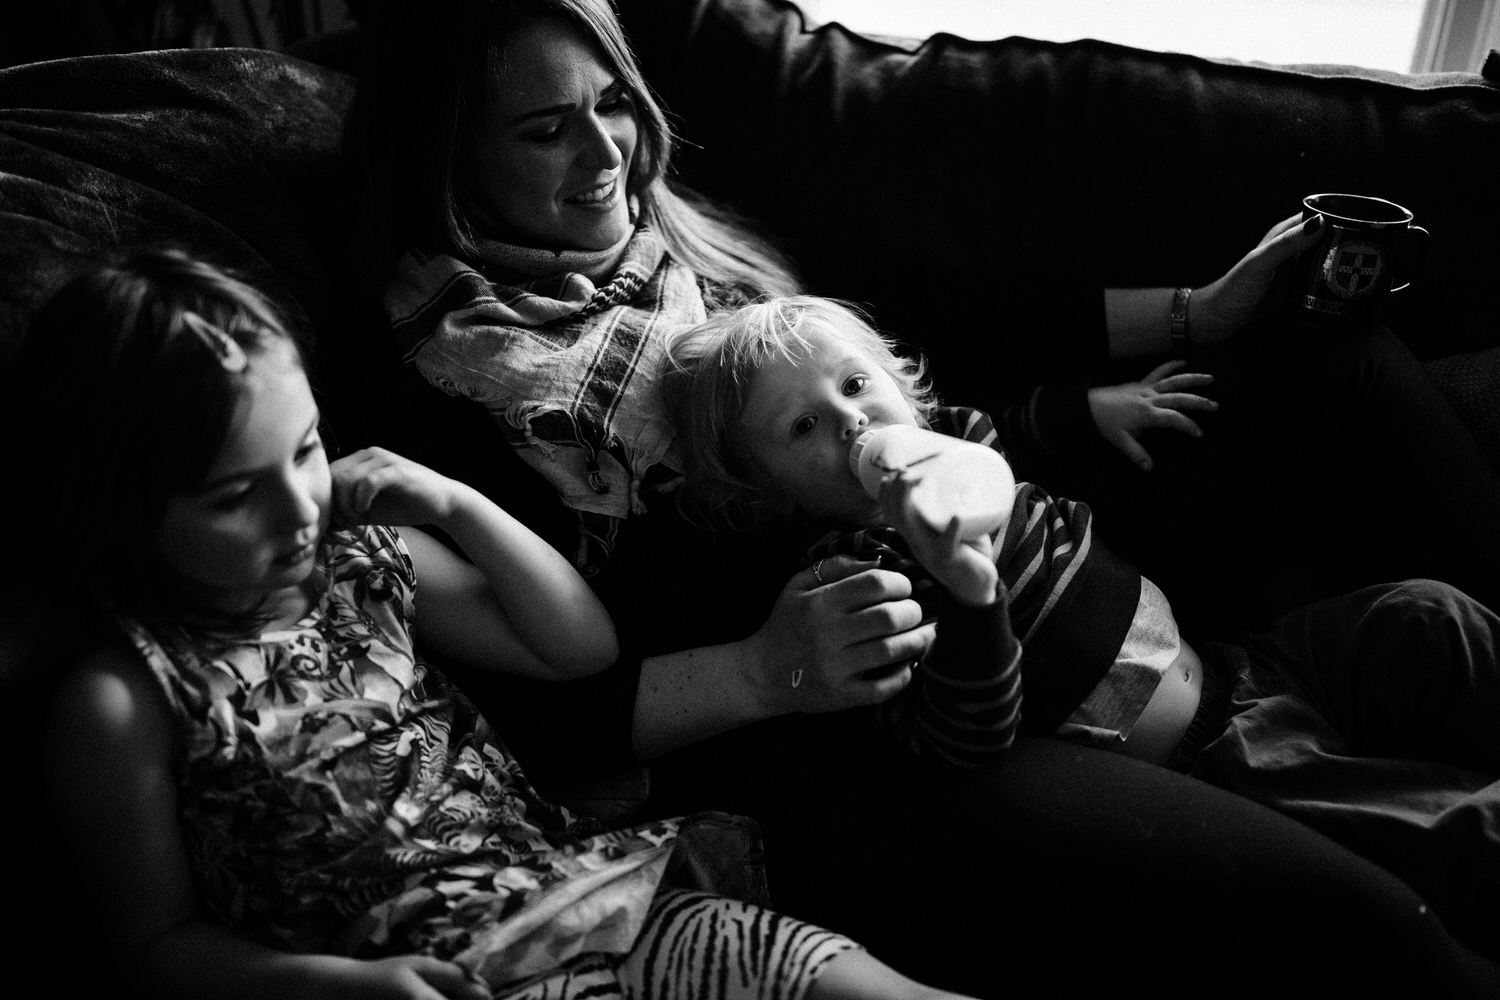 family fun photography shoot in black and white in Calgary at the clients home